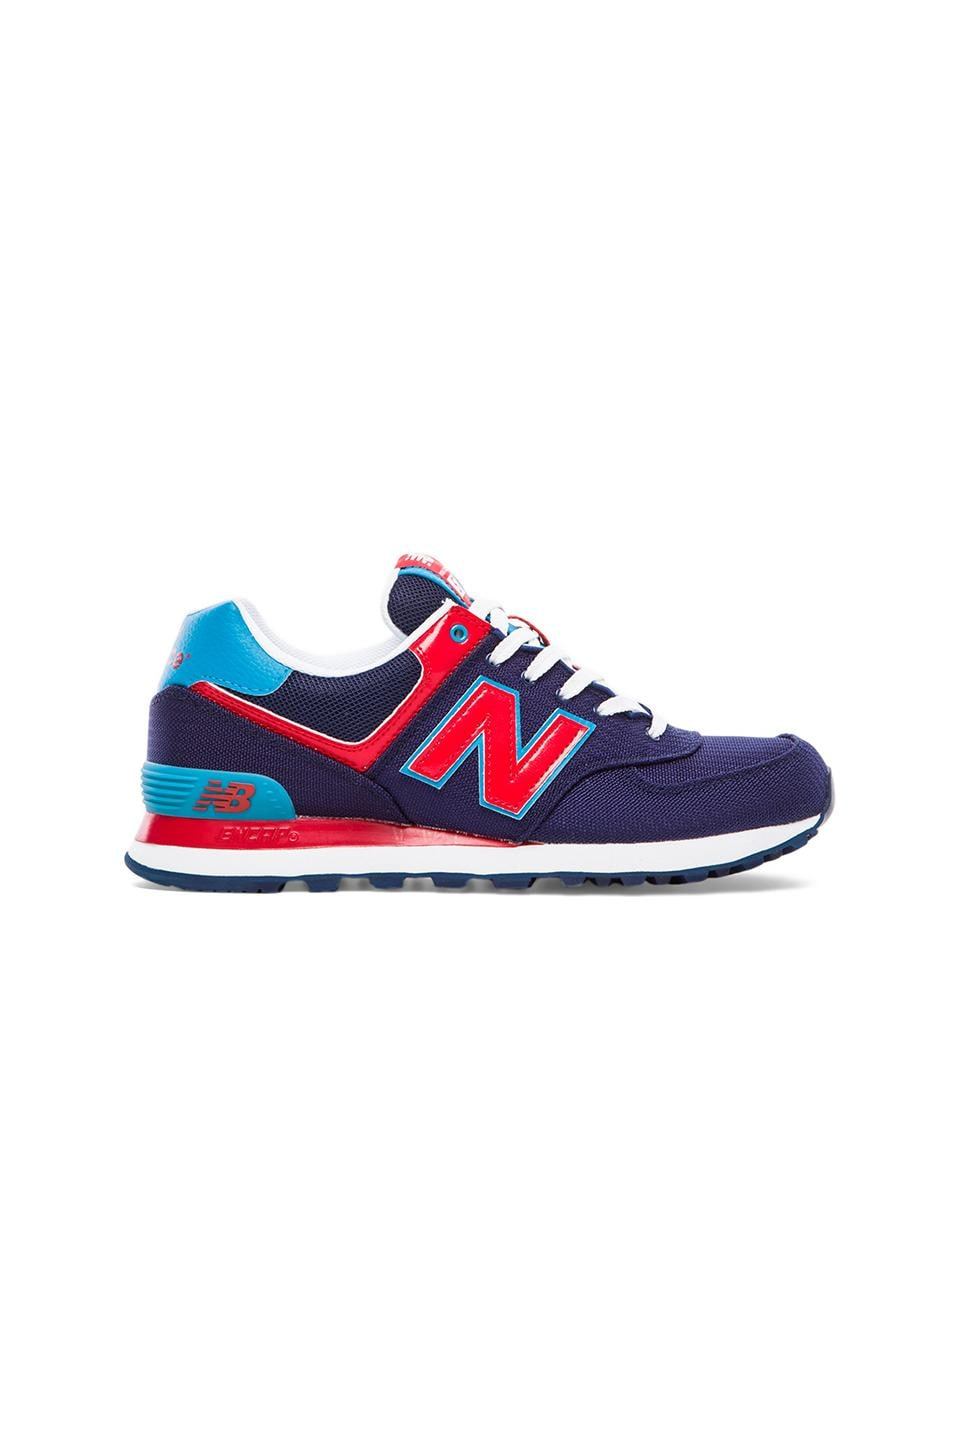 New Balance Passport ML574 in Blue & Red